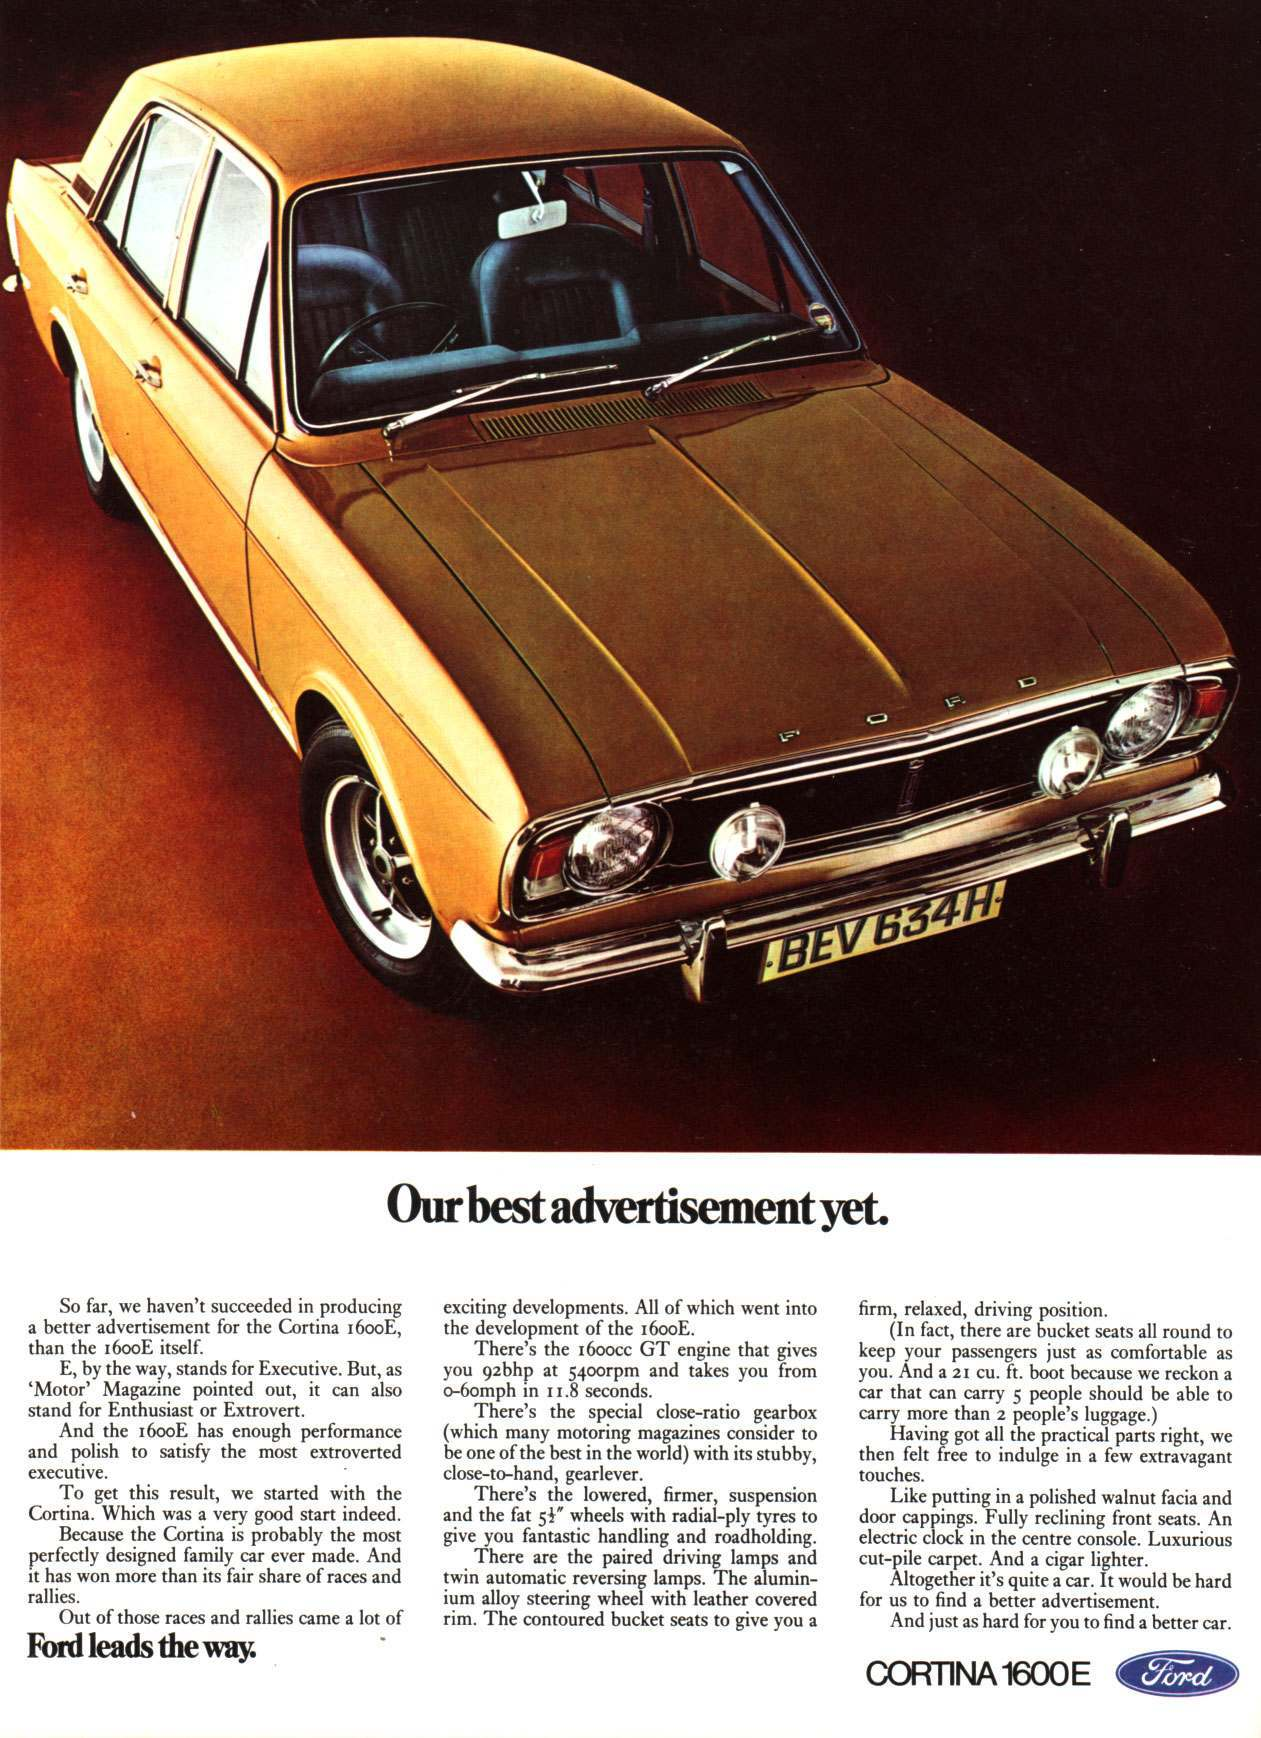 Ford Cortina 1600E from 1969.